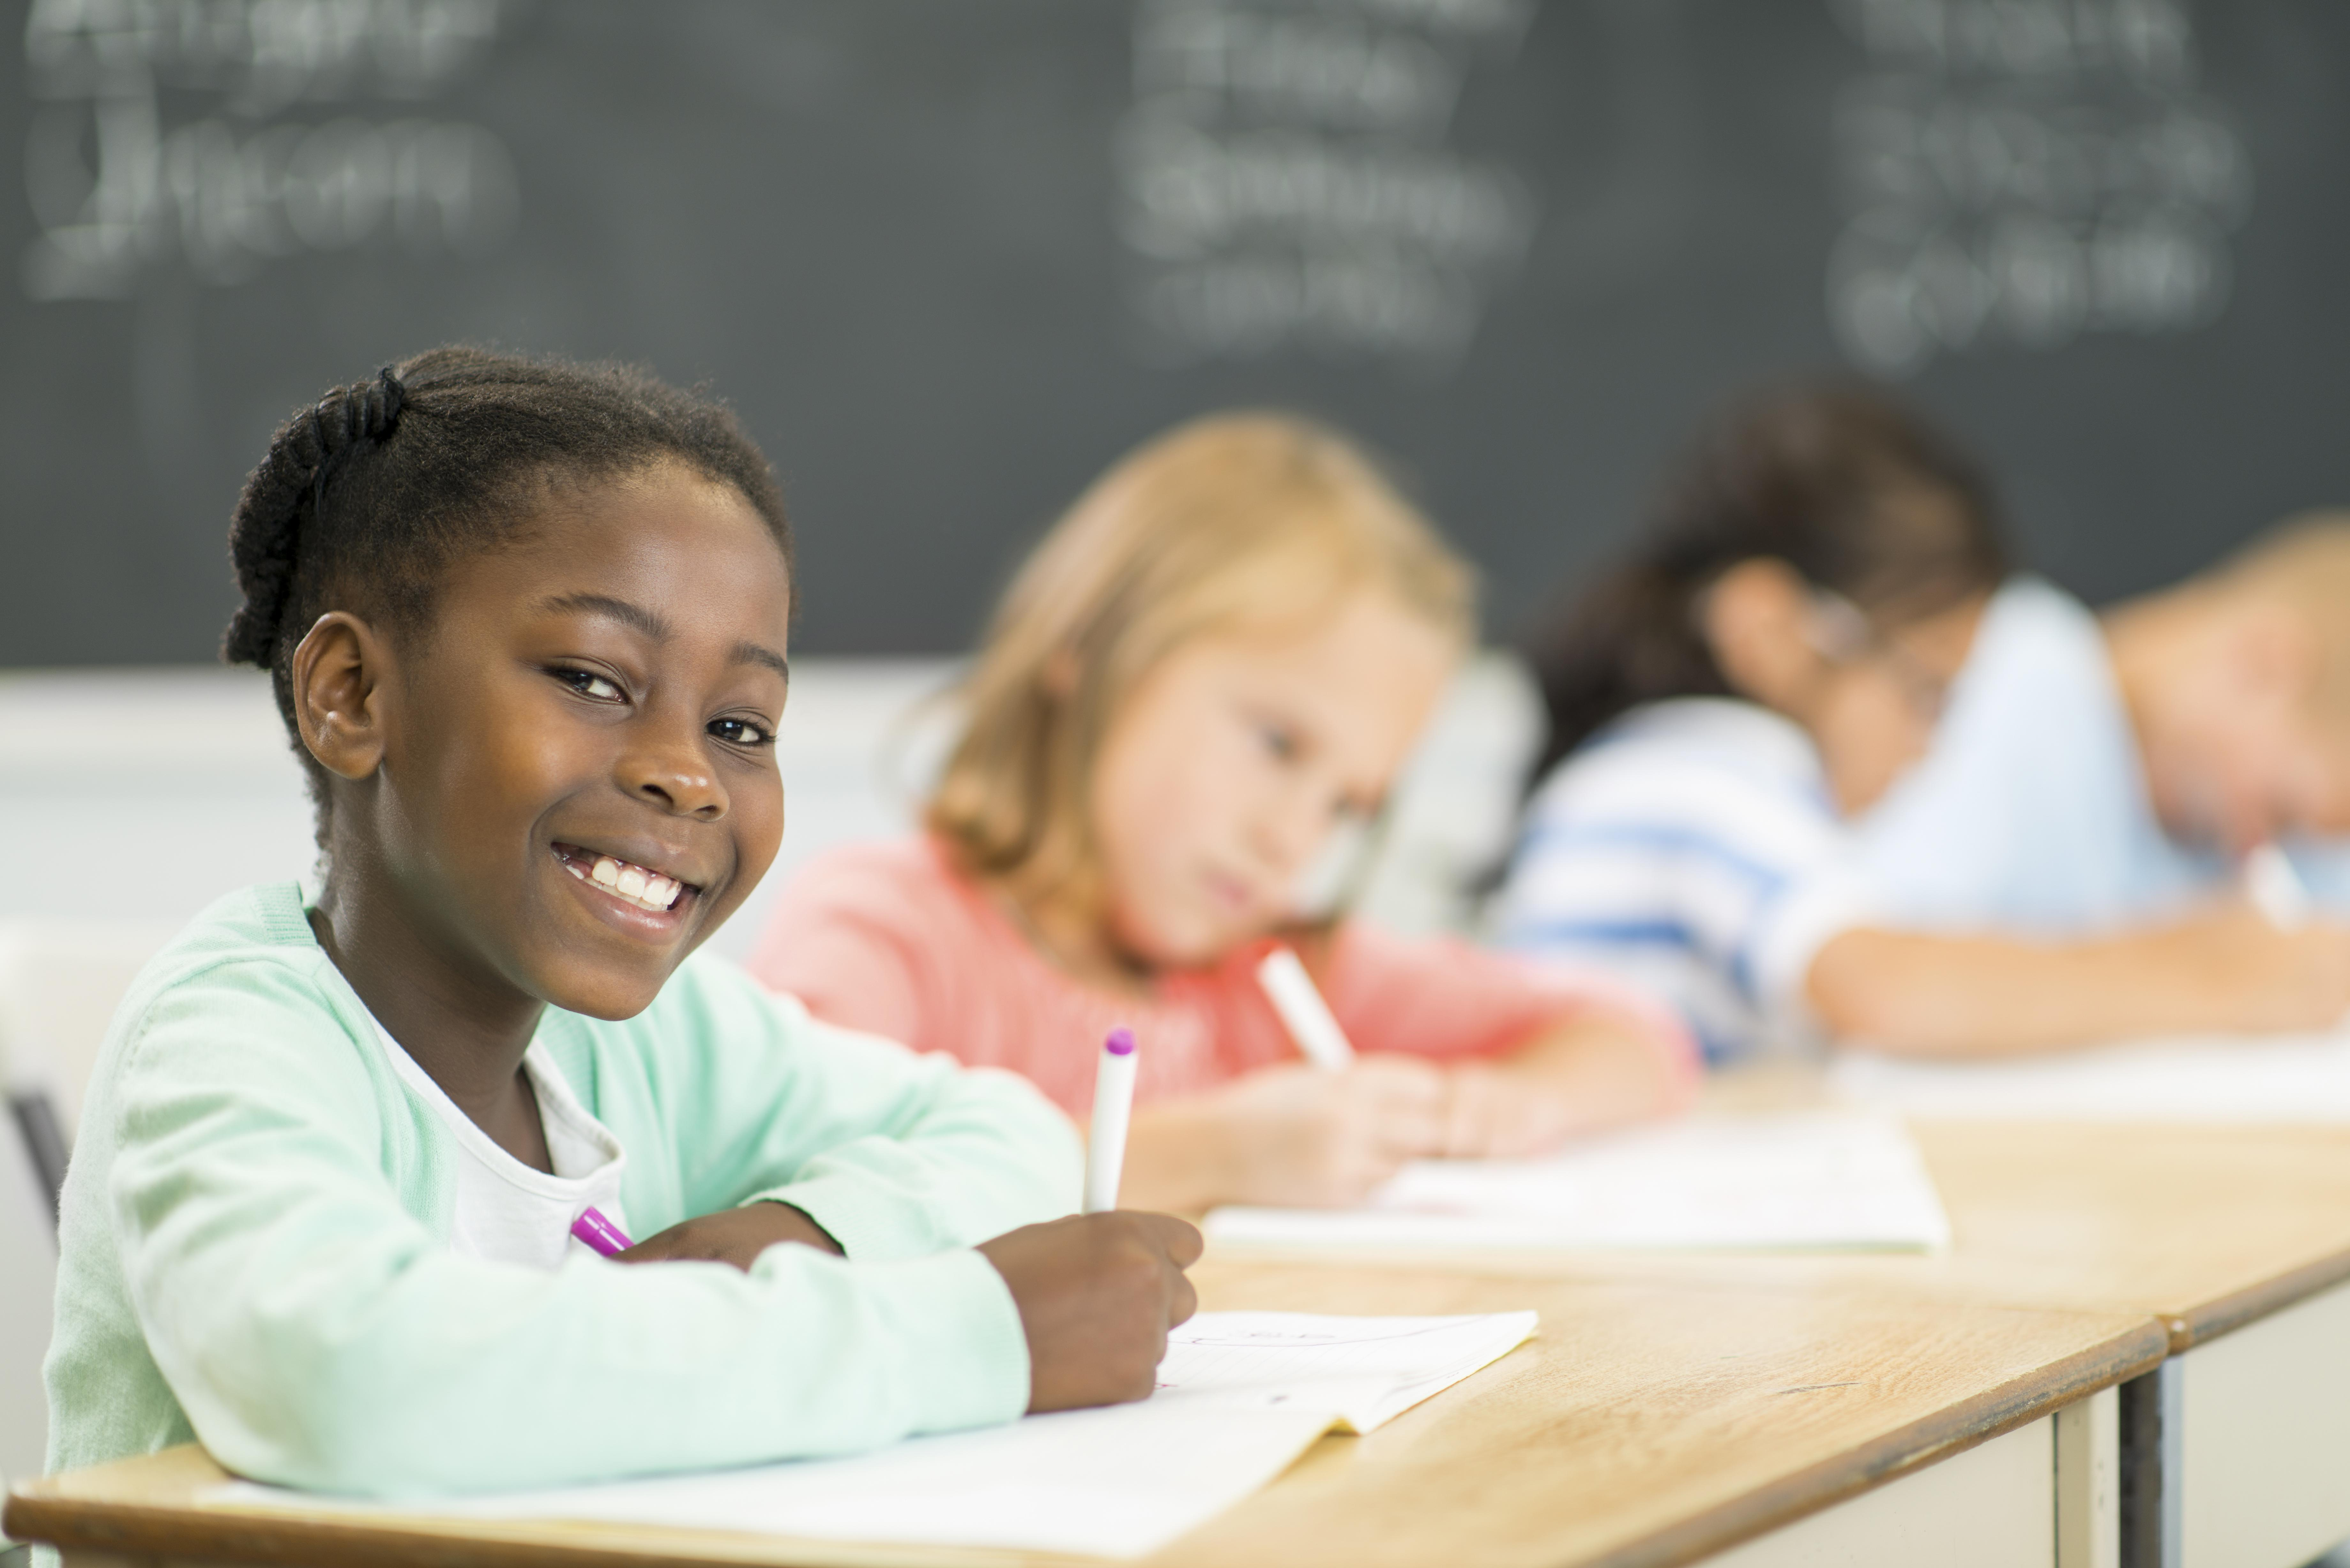 Diverse elementary students in the classroom